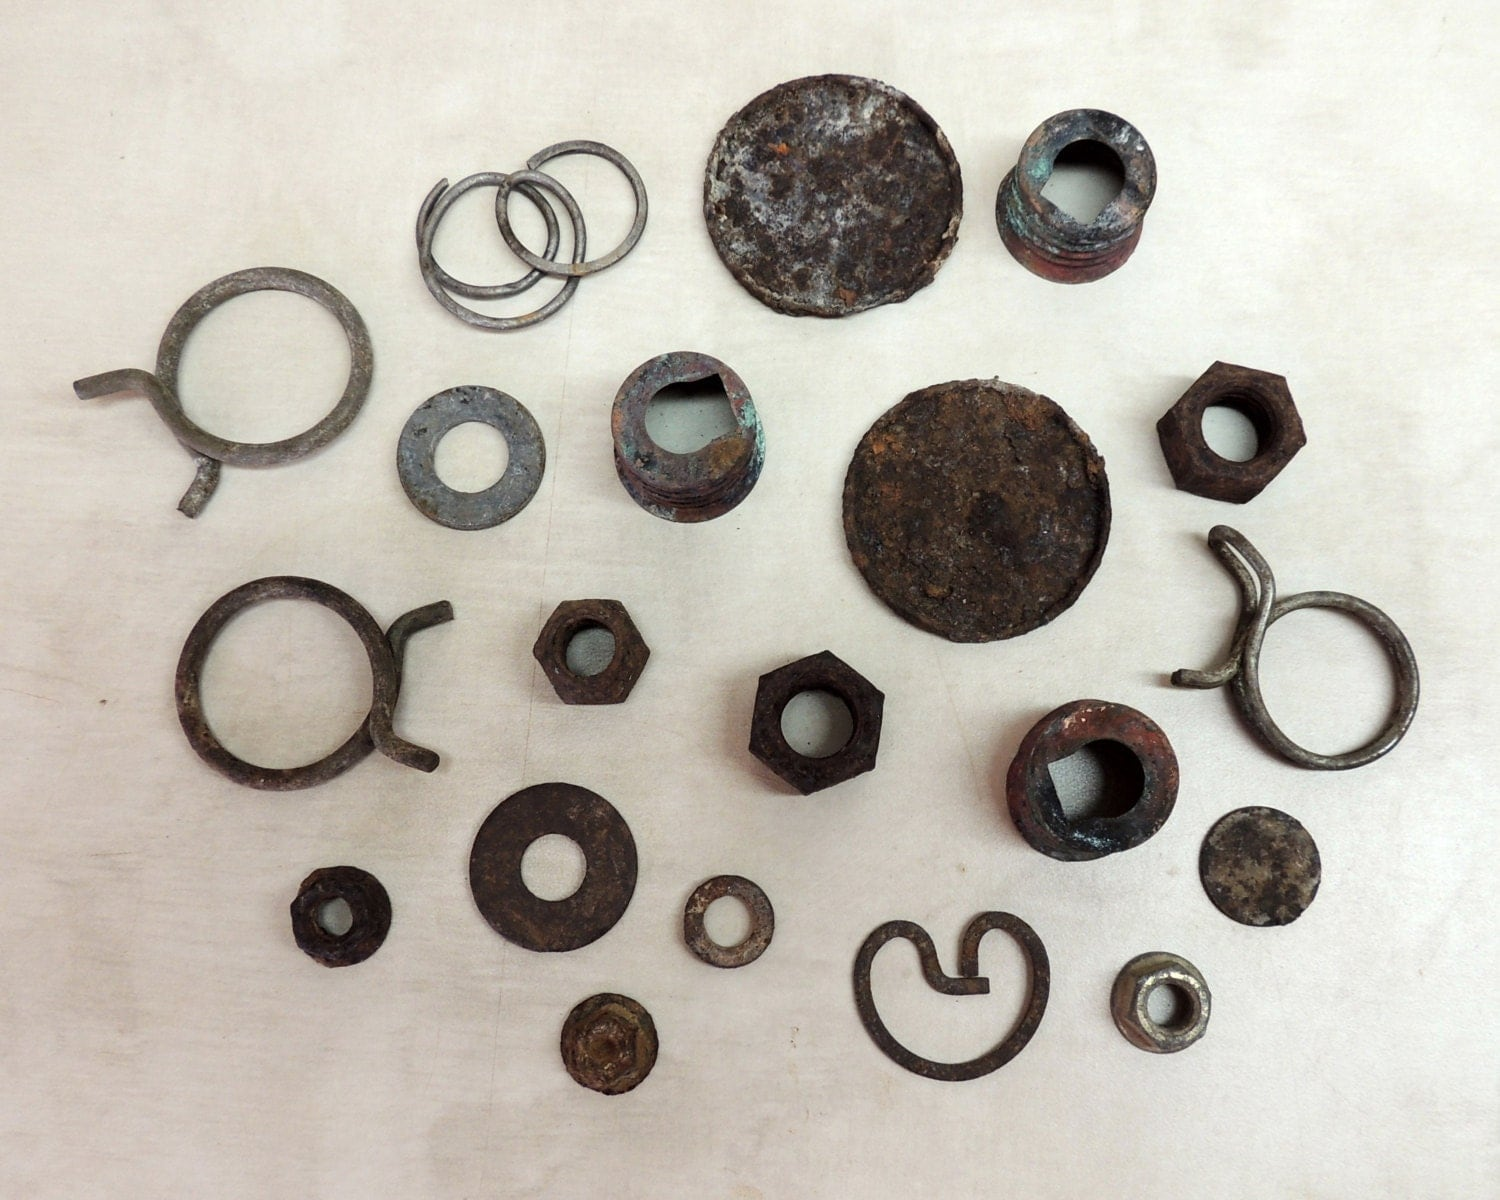 20 Pieces Rusty Metal objects / Round / Circle / by ...